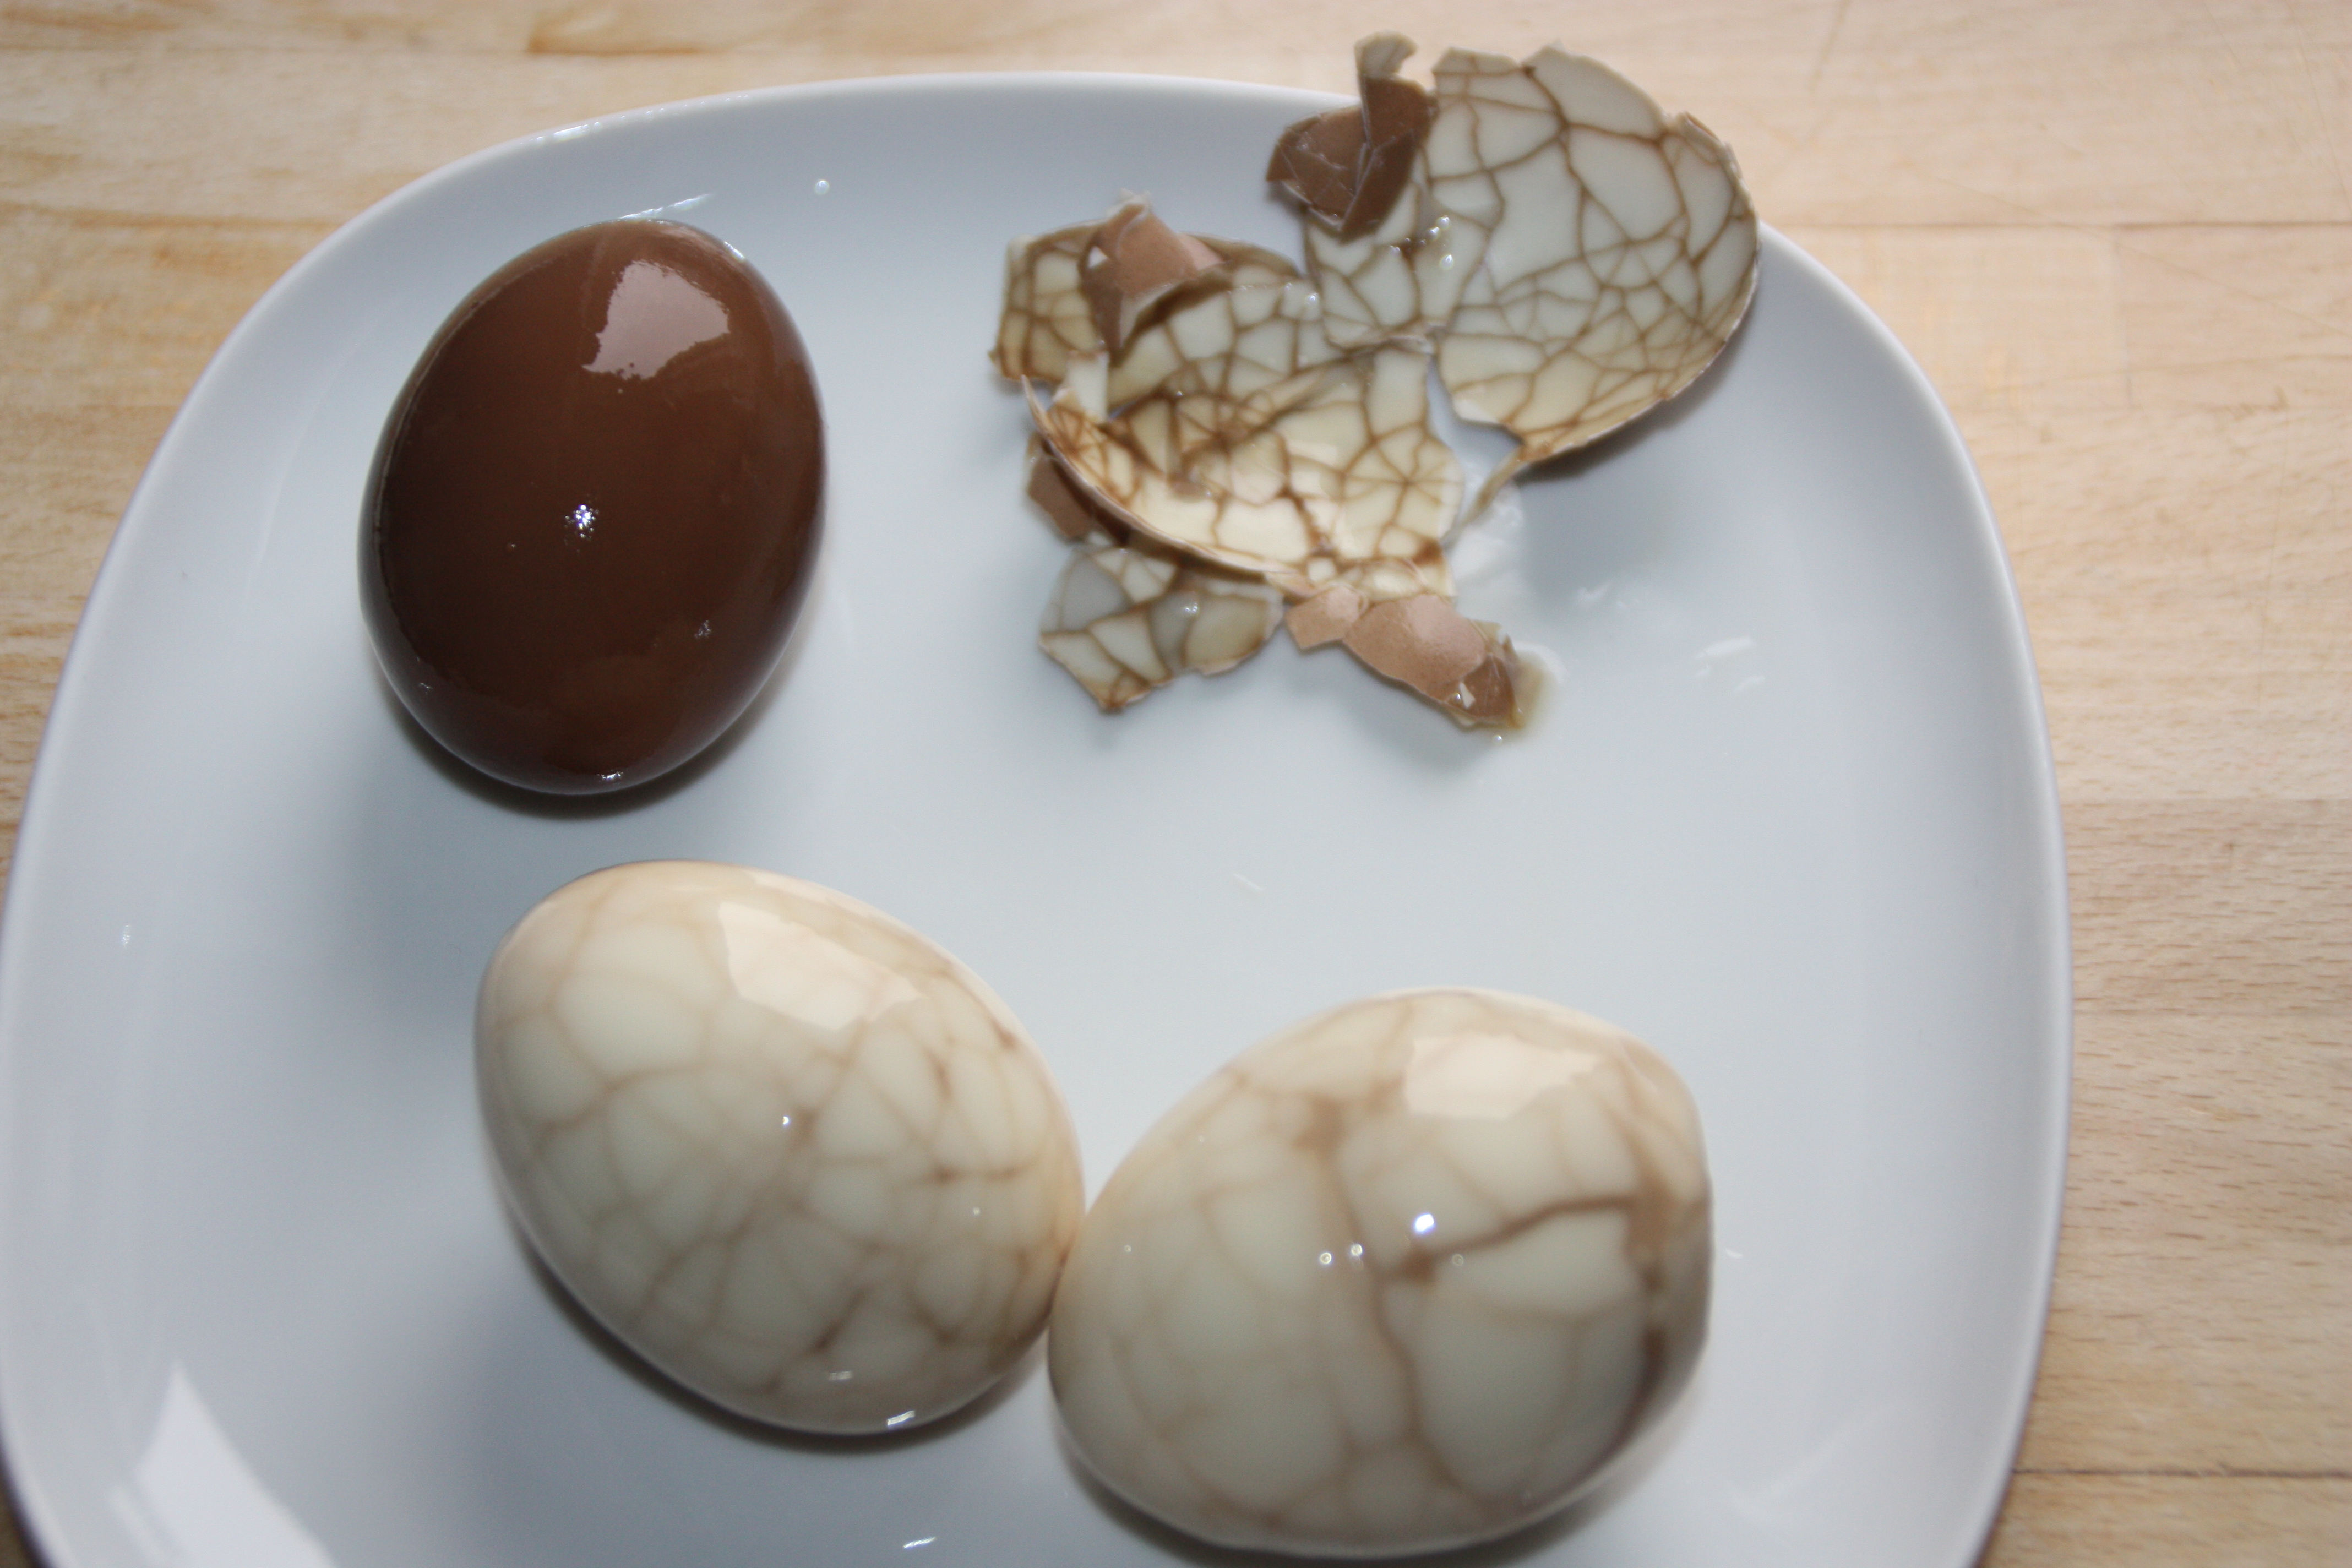 Tea egg - Wikipedia